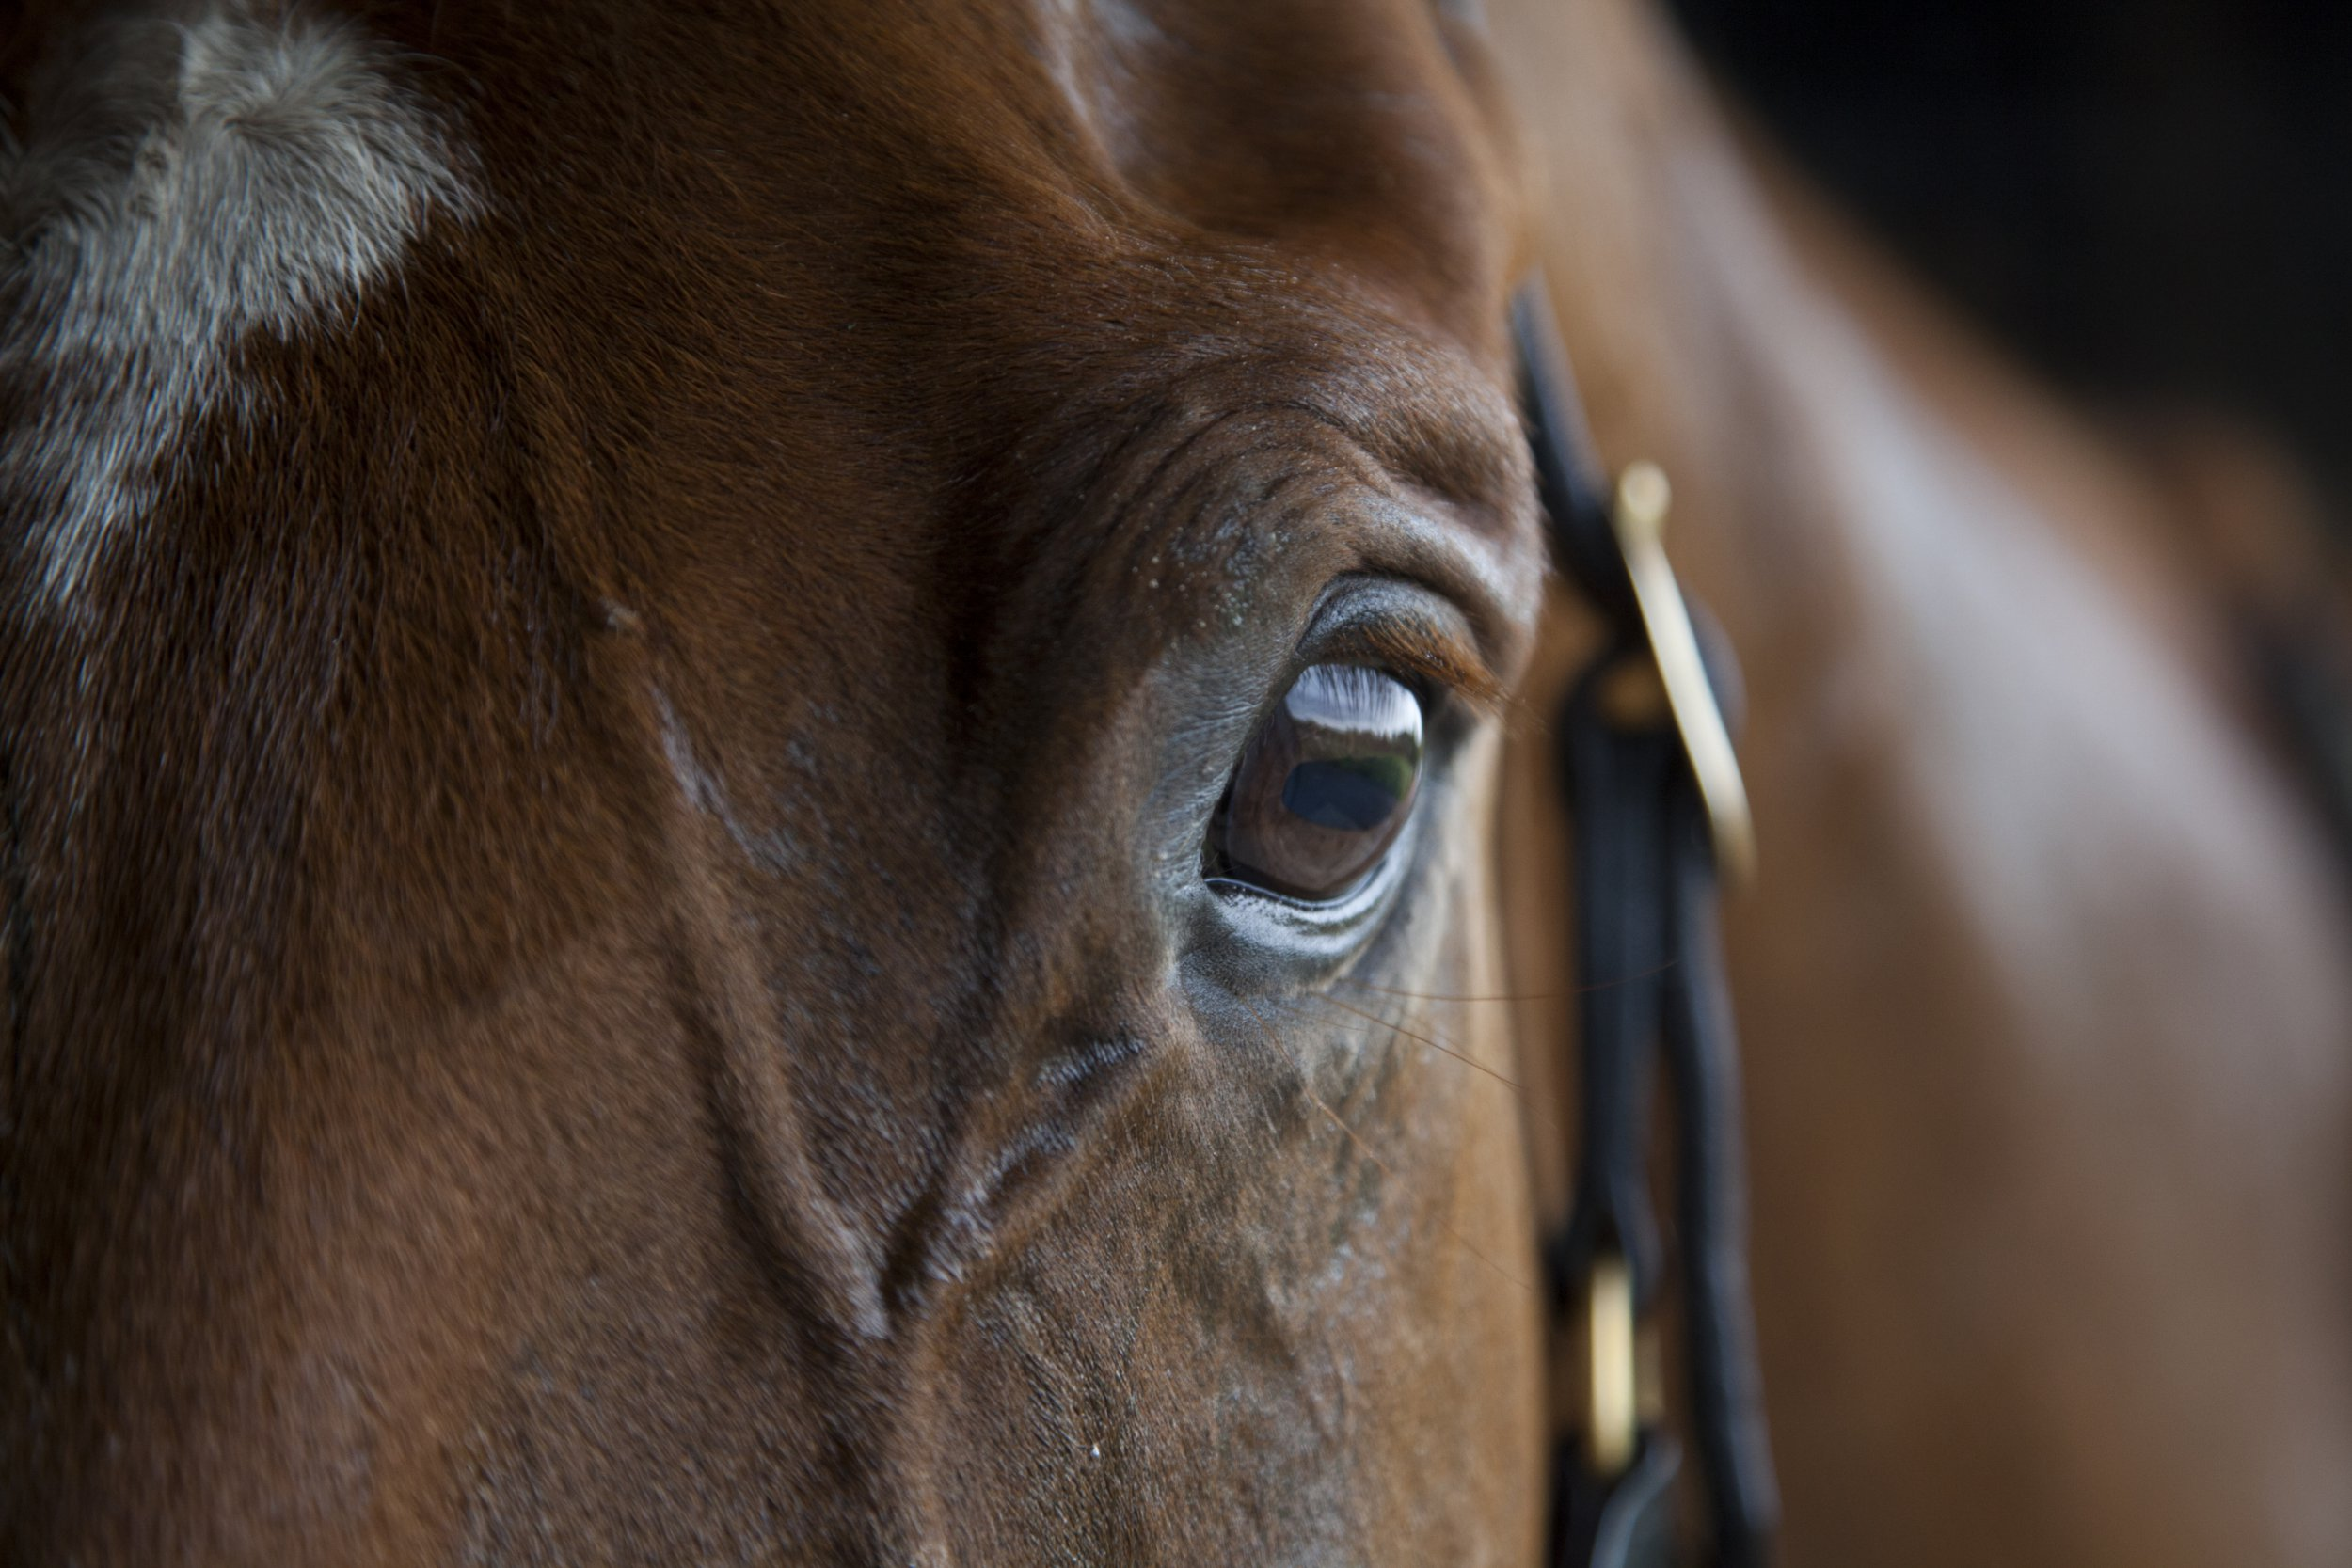 Man says horse gave him sexual consent by winking at him